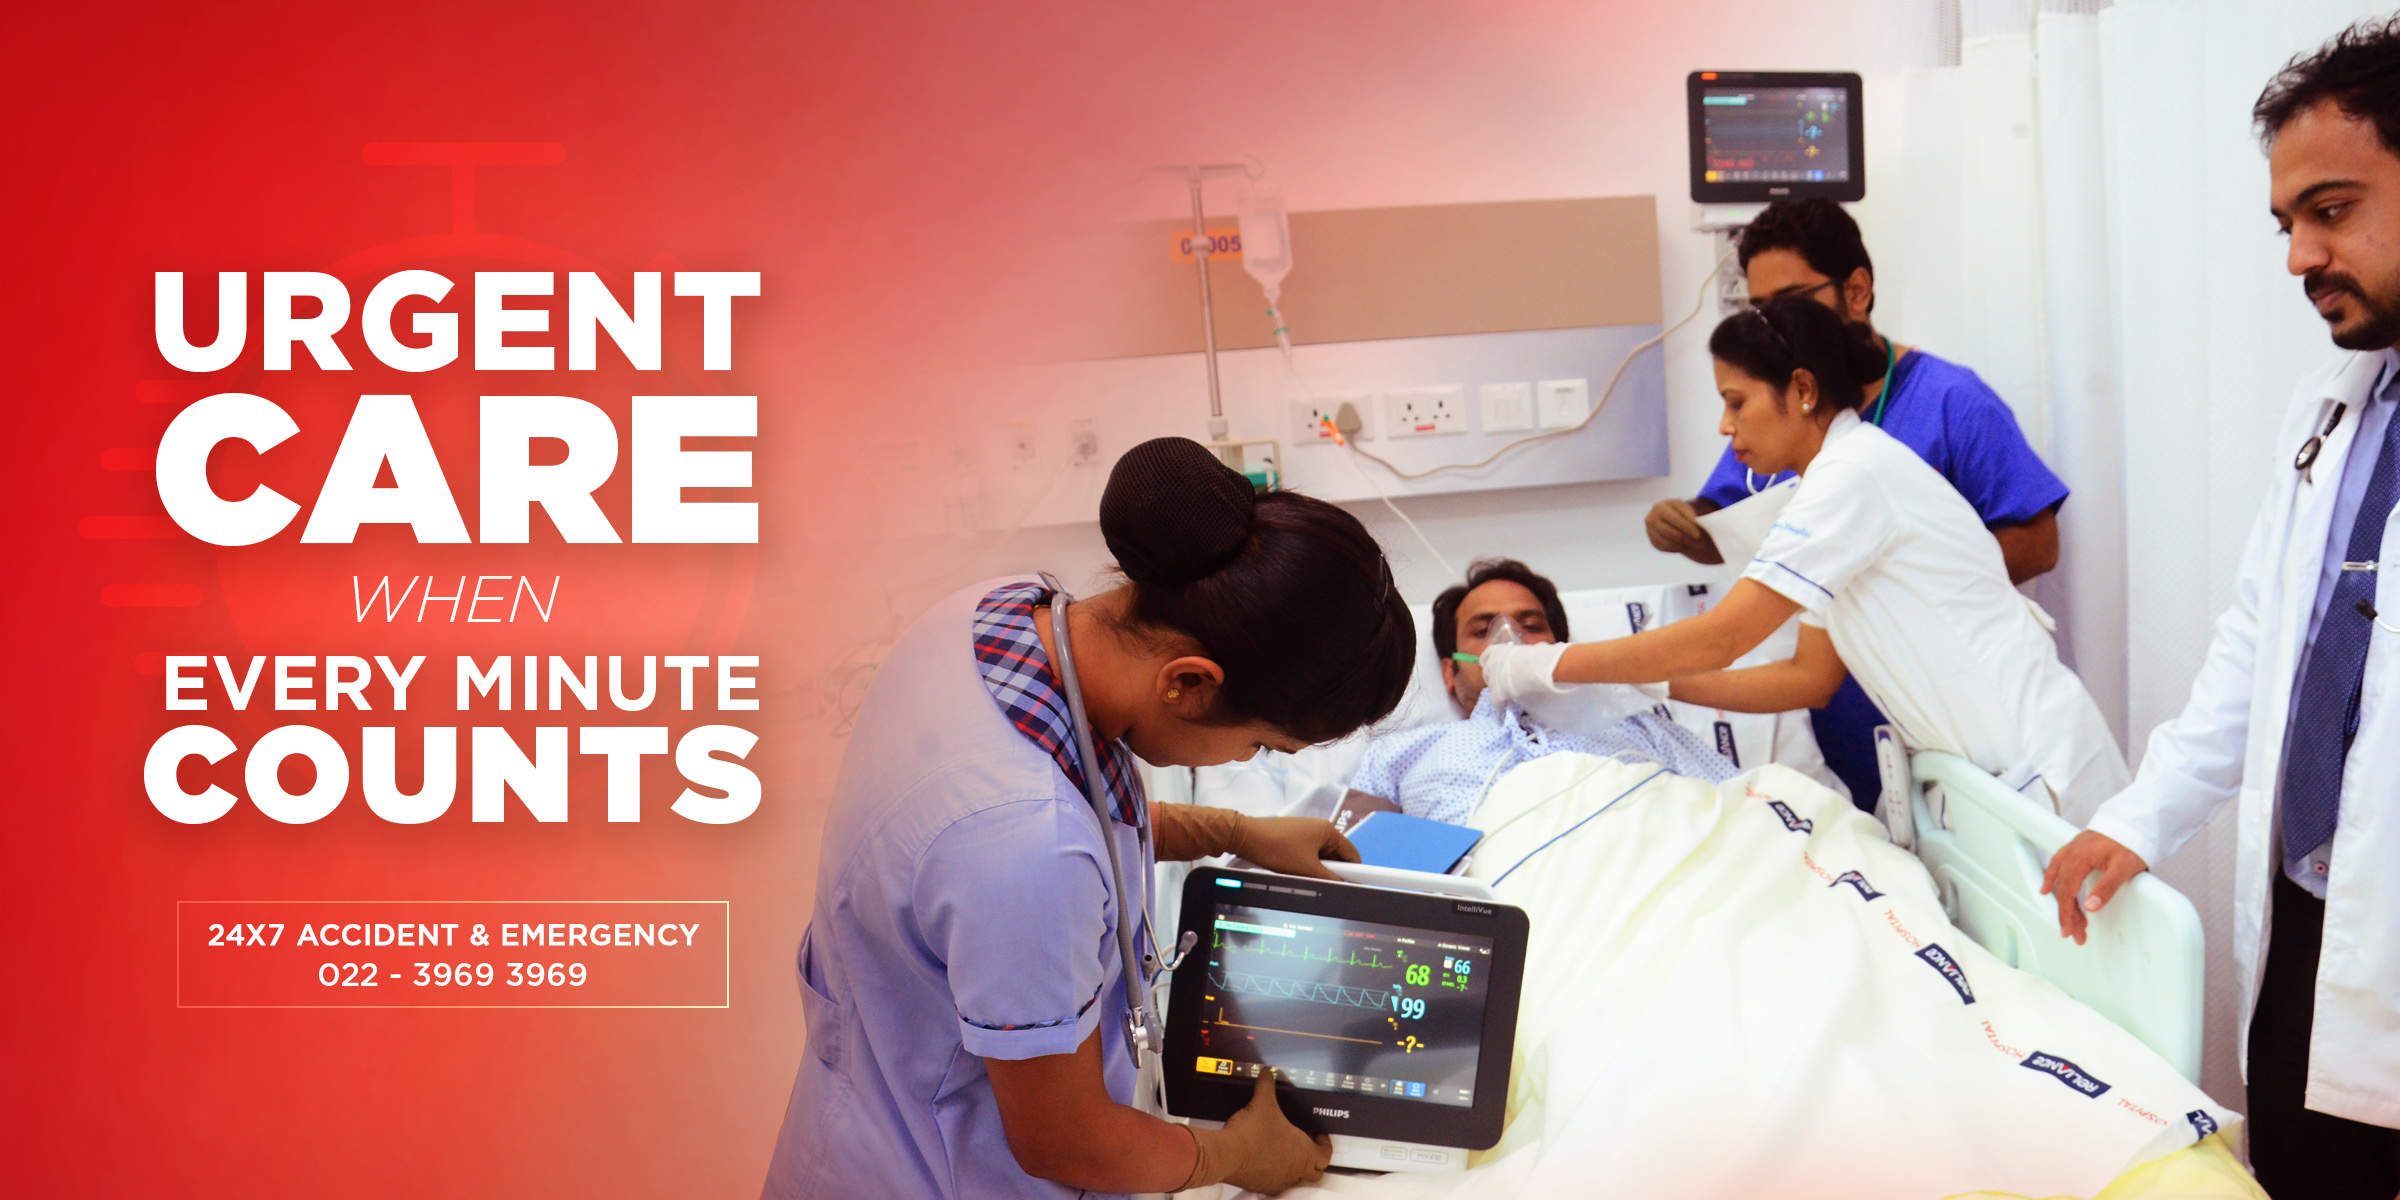 Urgent Care When Every Minute Counts